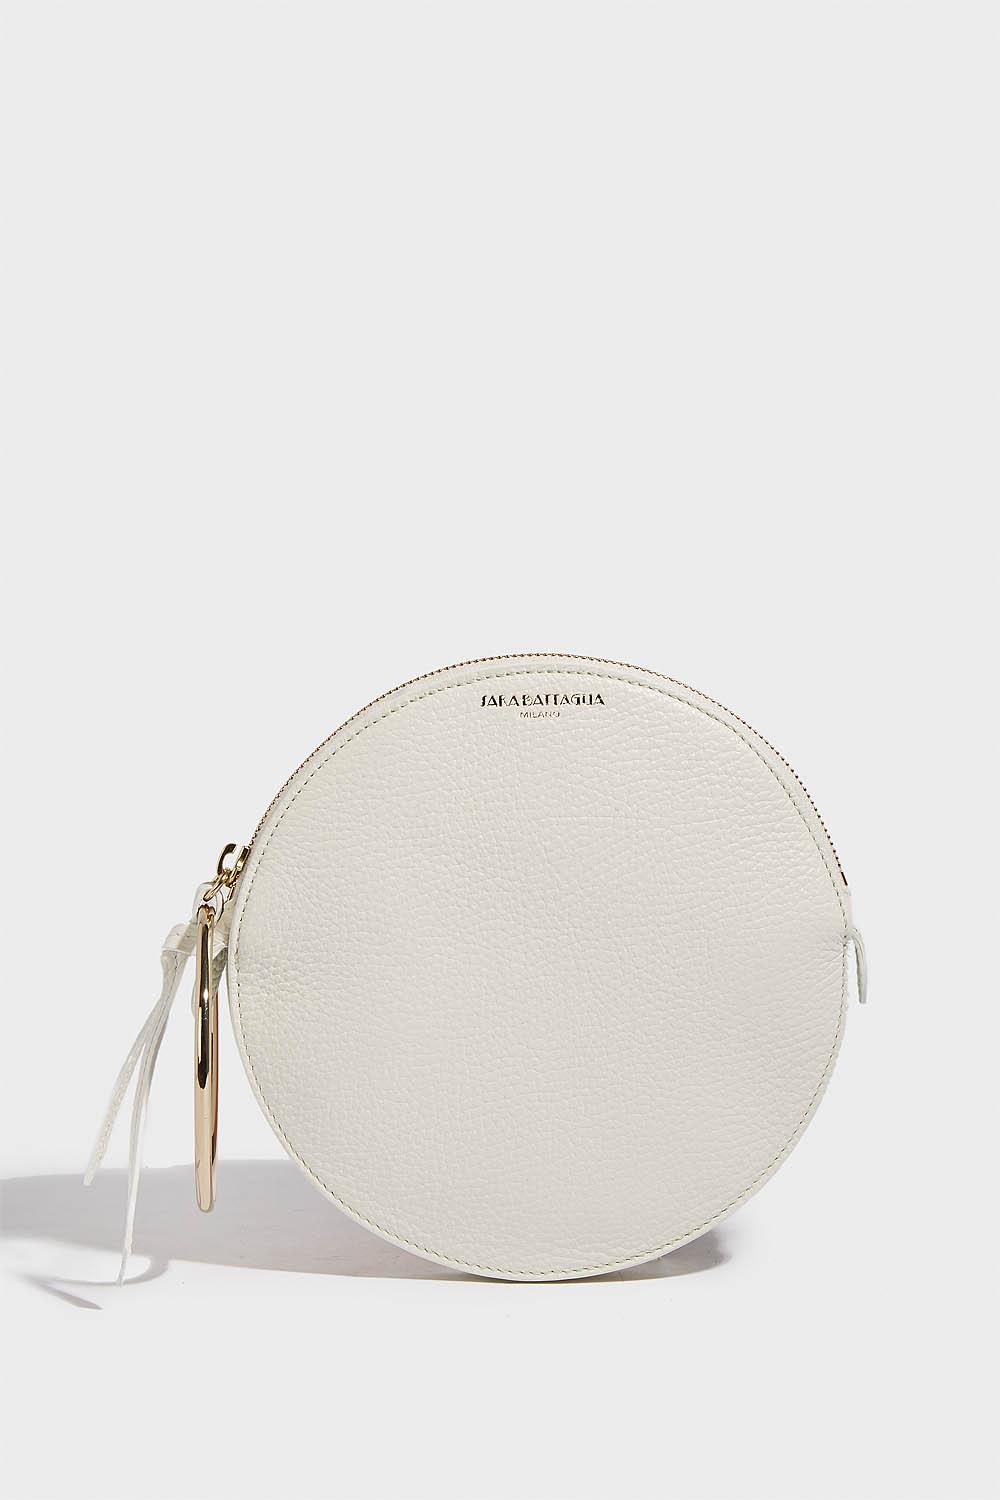 Sara Battaglia Leather Round Bracelet Bag